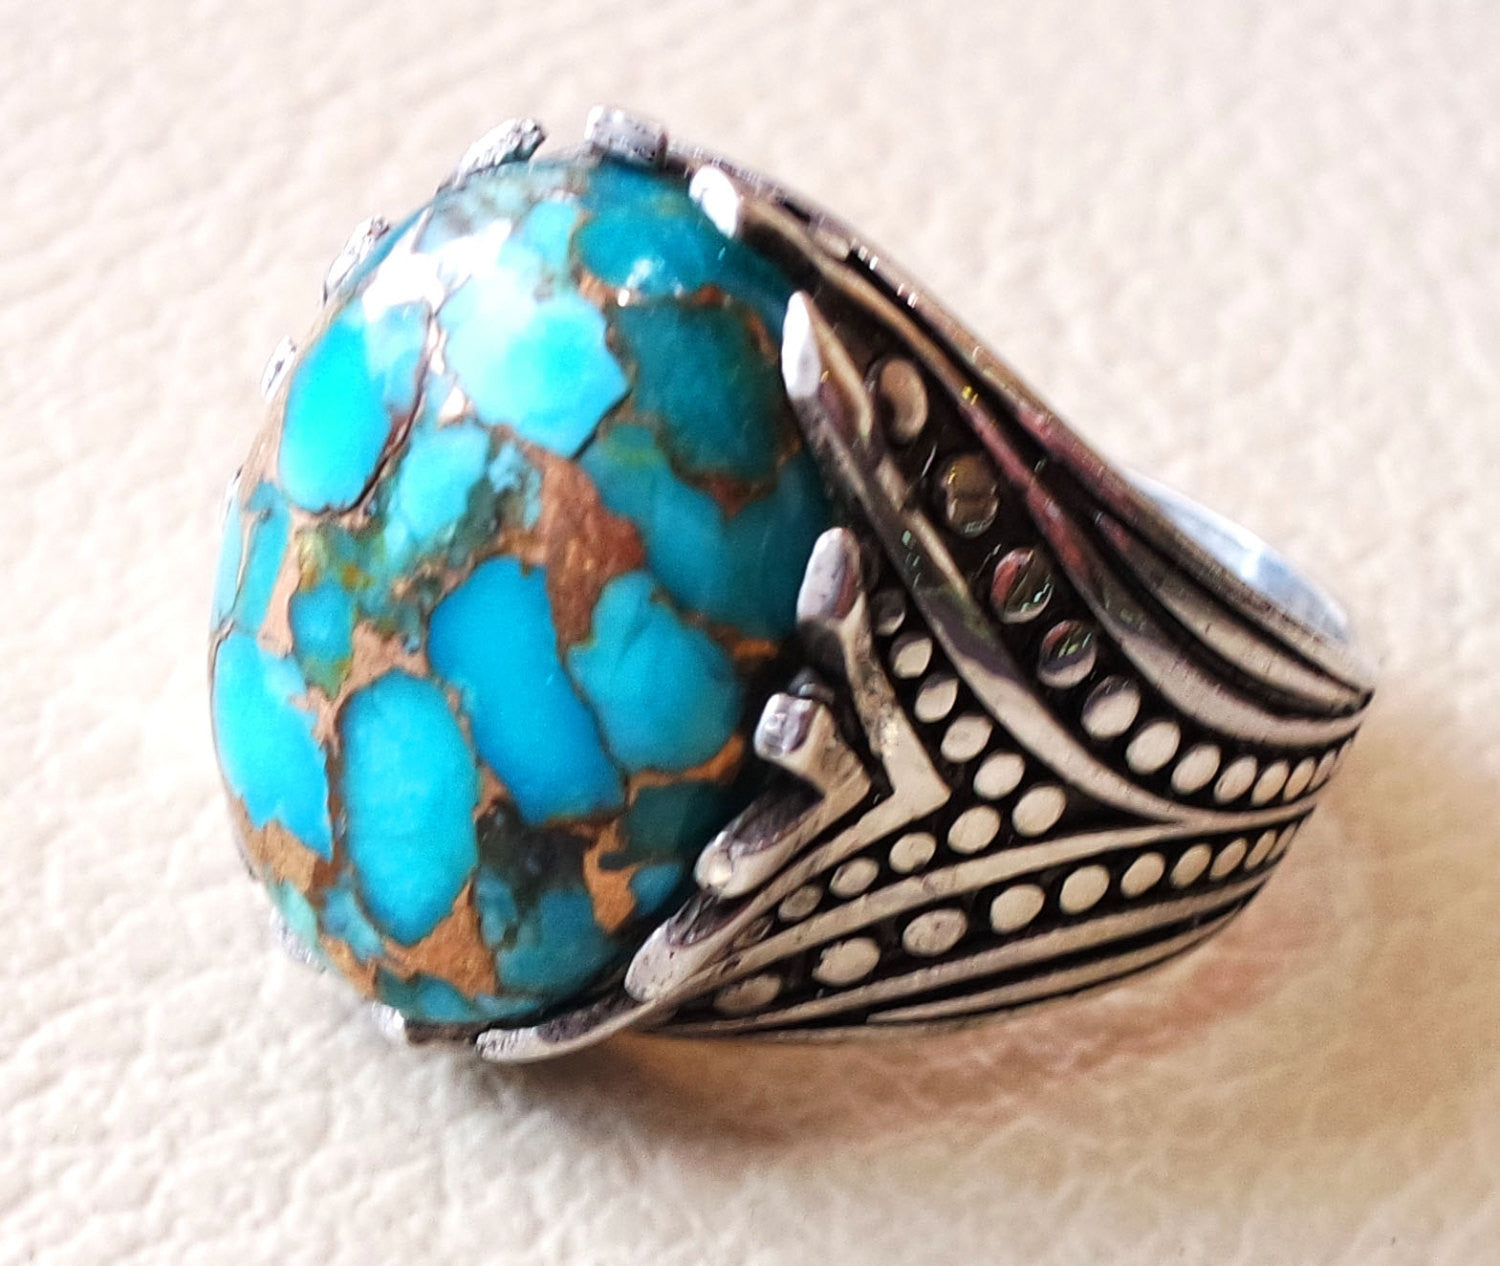 natural copper turquoise oval cabochon men ring sterling silver 925 all sizes jewelry arabic ottoman antique style high quality stone